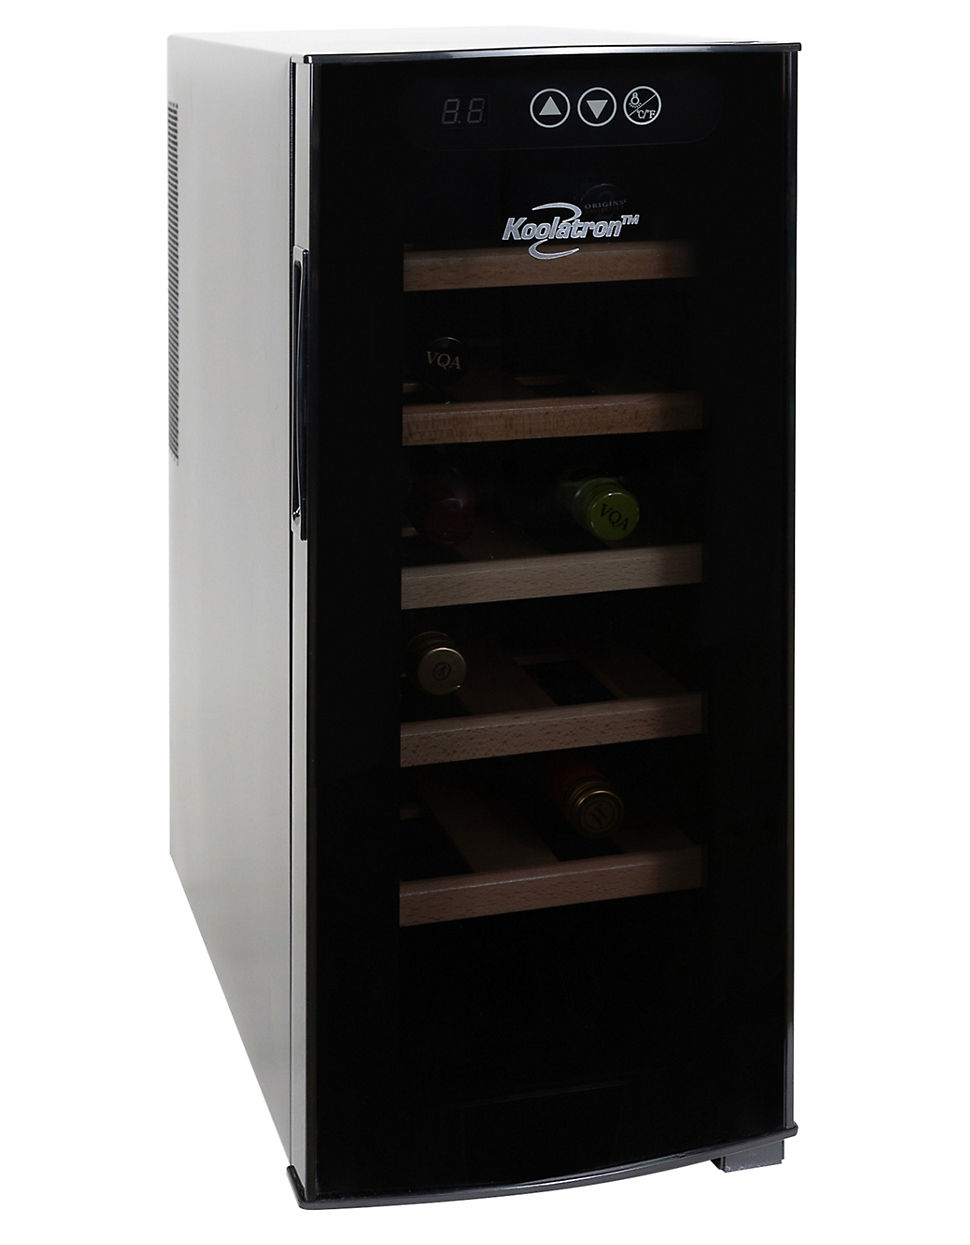 glass costco wine cooler cellar of a full door size building countertop